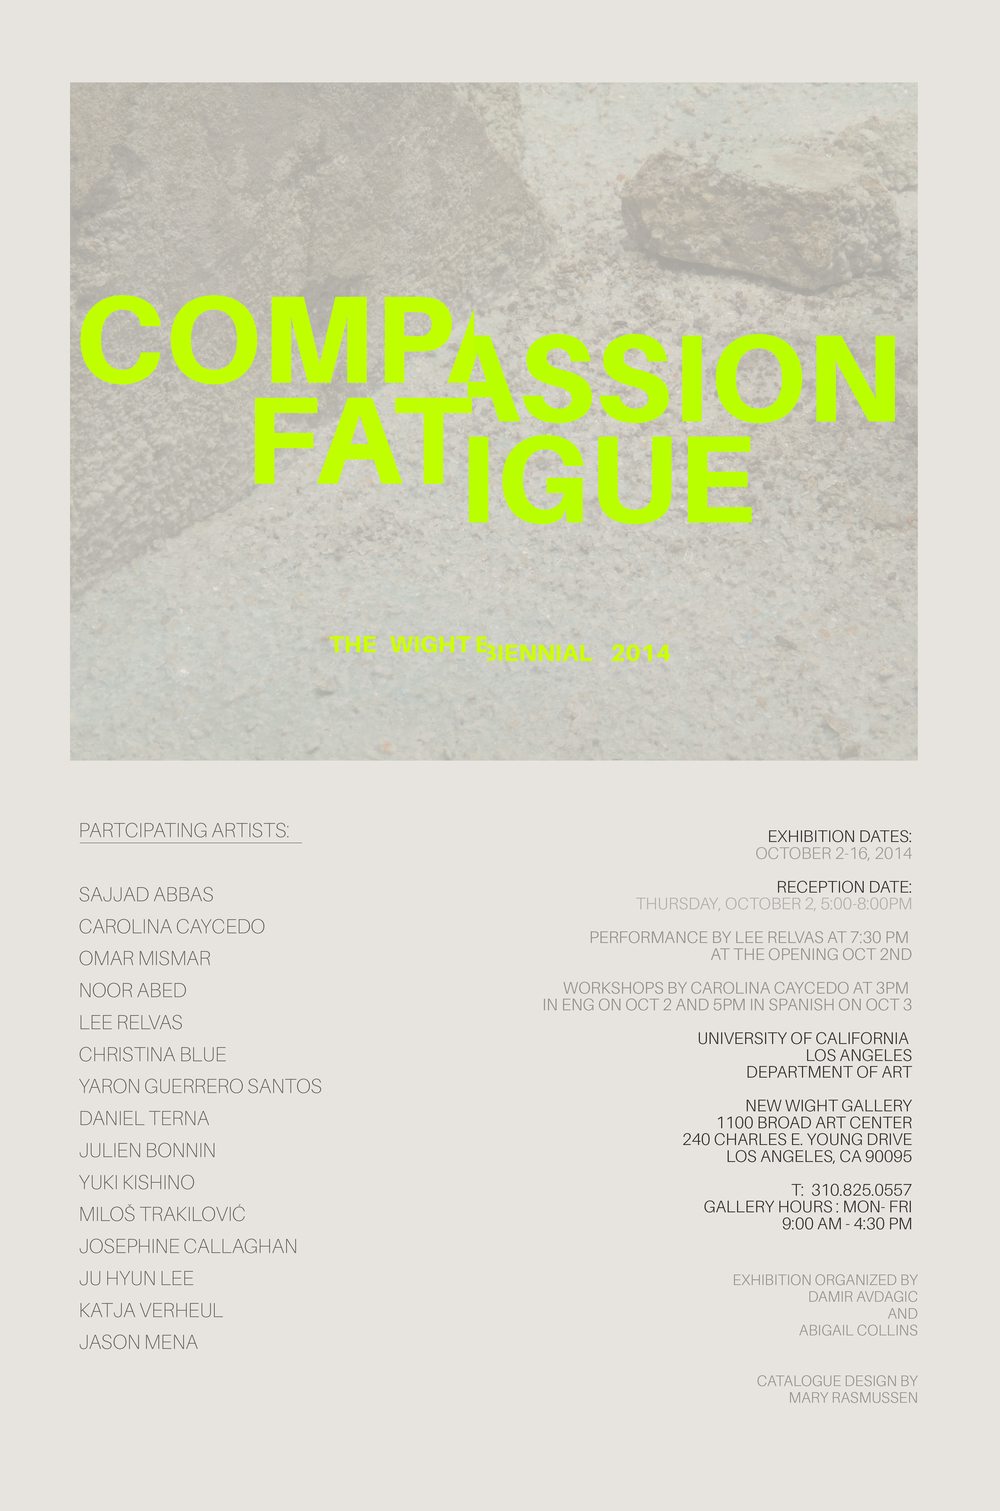 compassion fatigue abigail raphael collins the catalog designed by mary rasmussen features an essay below by hans kuzmich